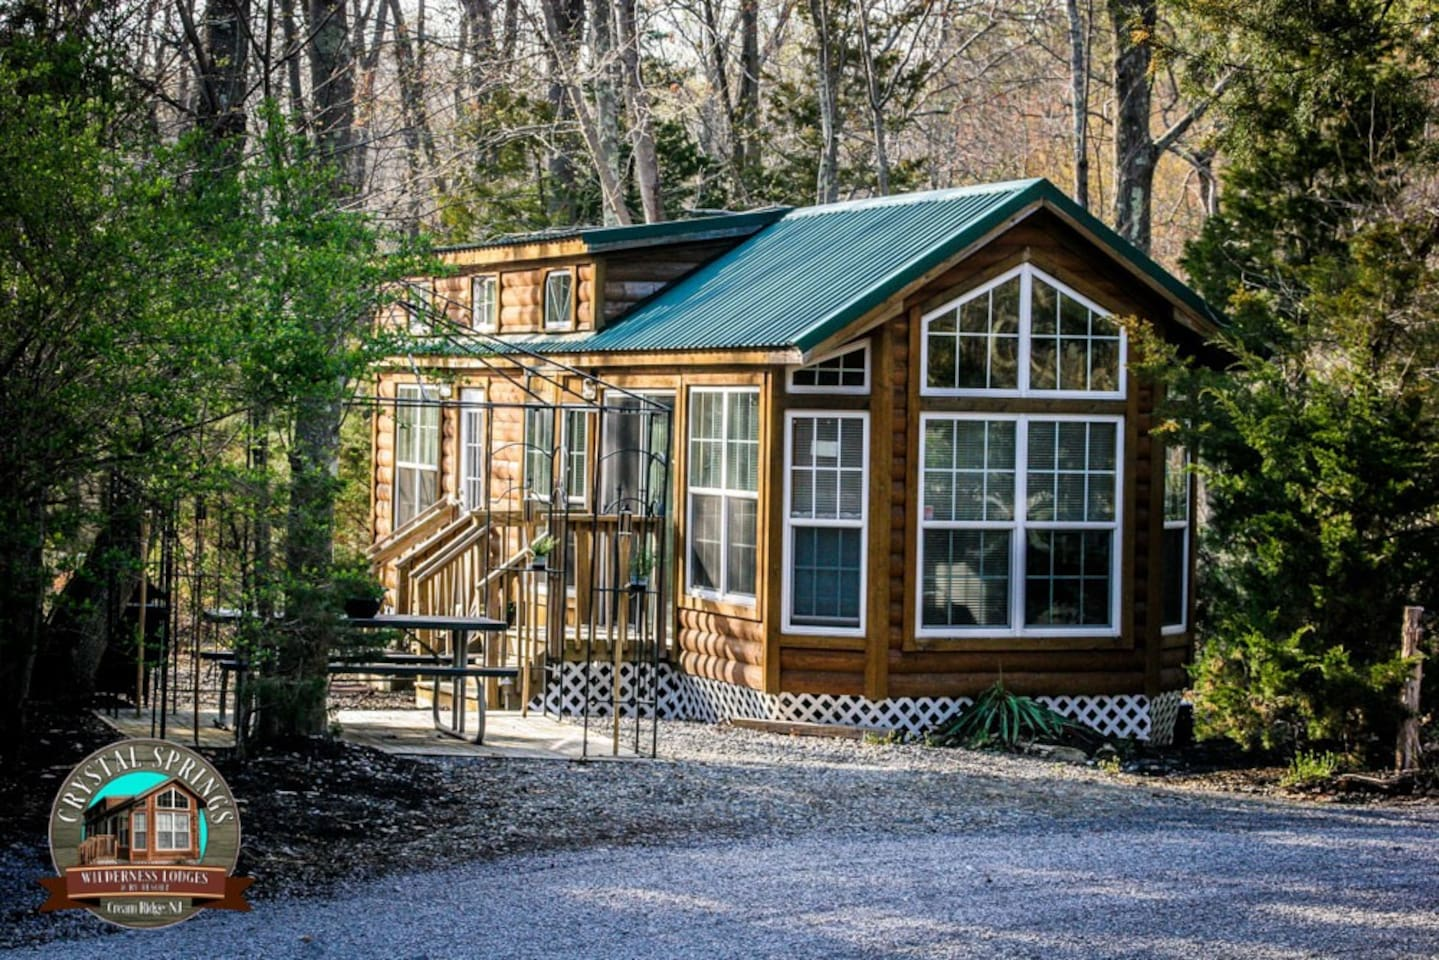 farm rent beach cabins for red in vacation inc img nj ny turnwood lew rentals cottage